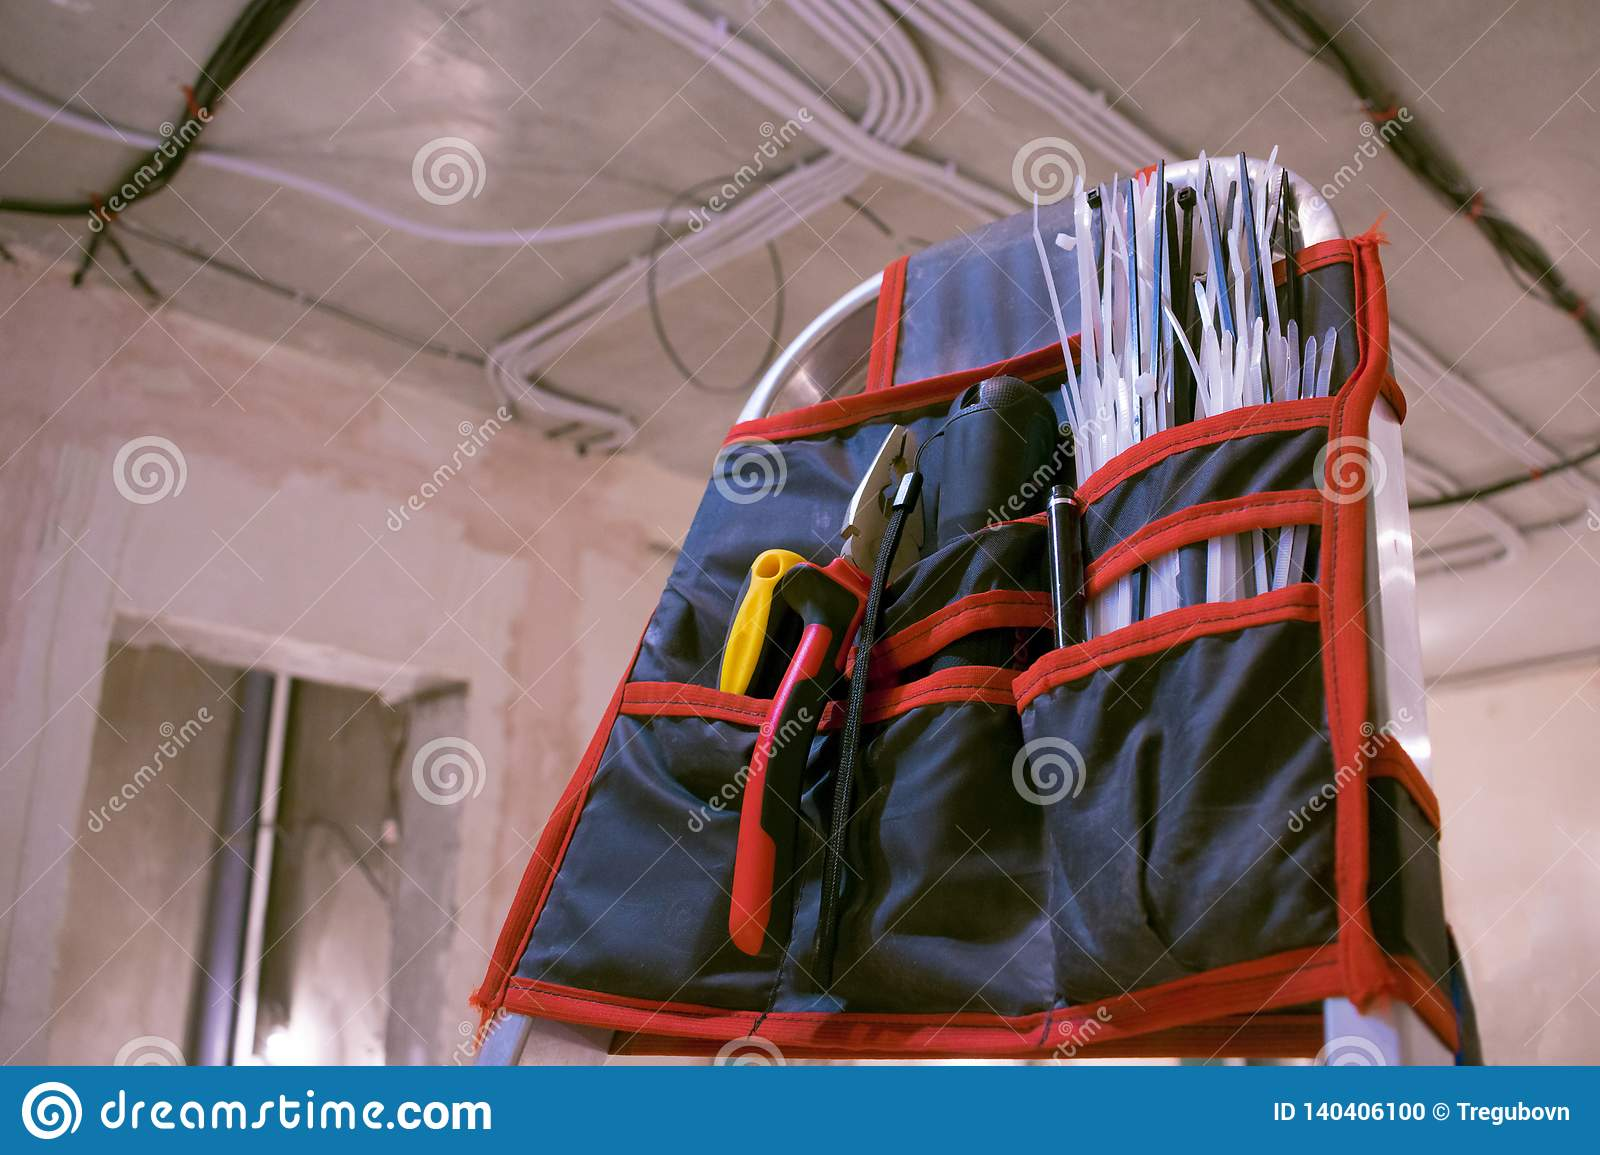 Electricians tool kit stock photo. Image of light, view ...